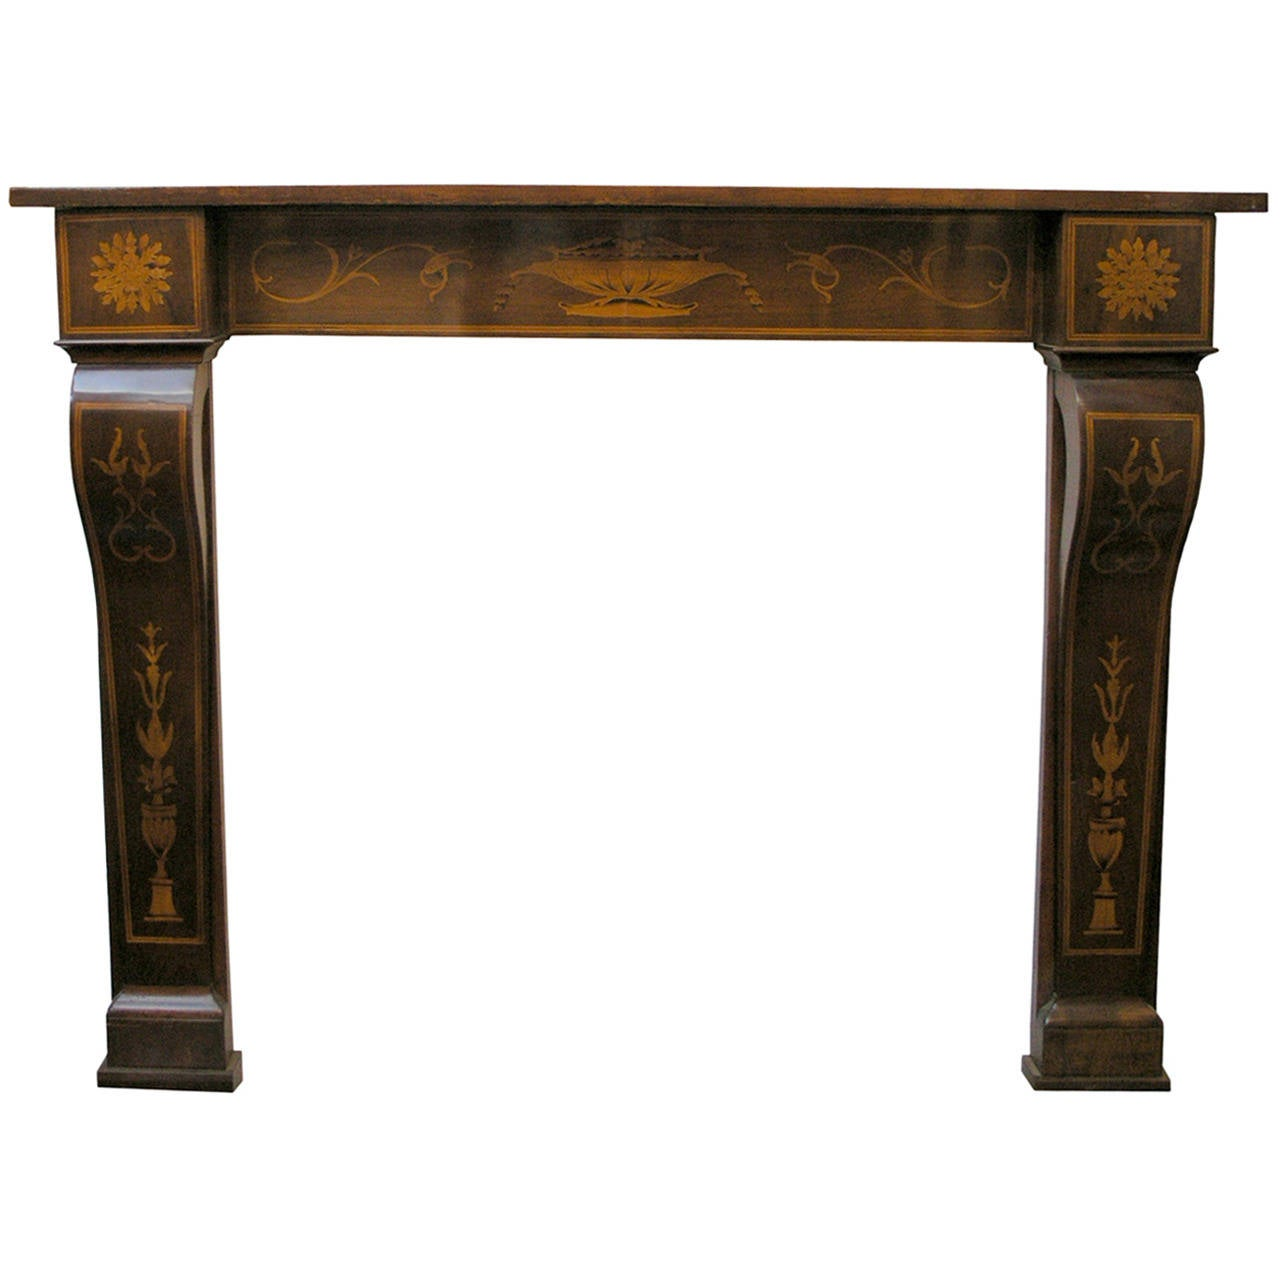 Antique Inlaid Walnut Wood Fireplace Mantel 19th Century For Sale At 1stdibs